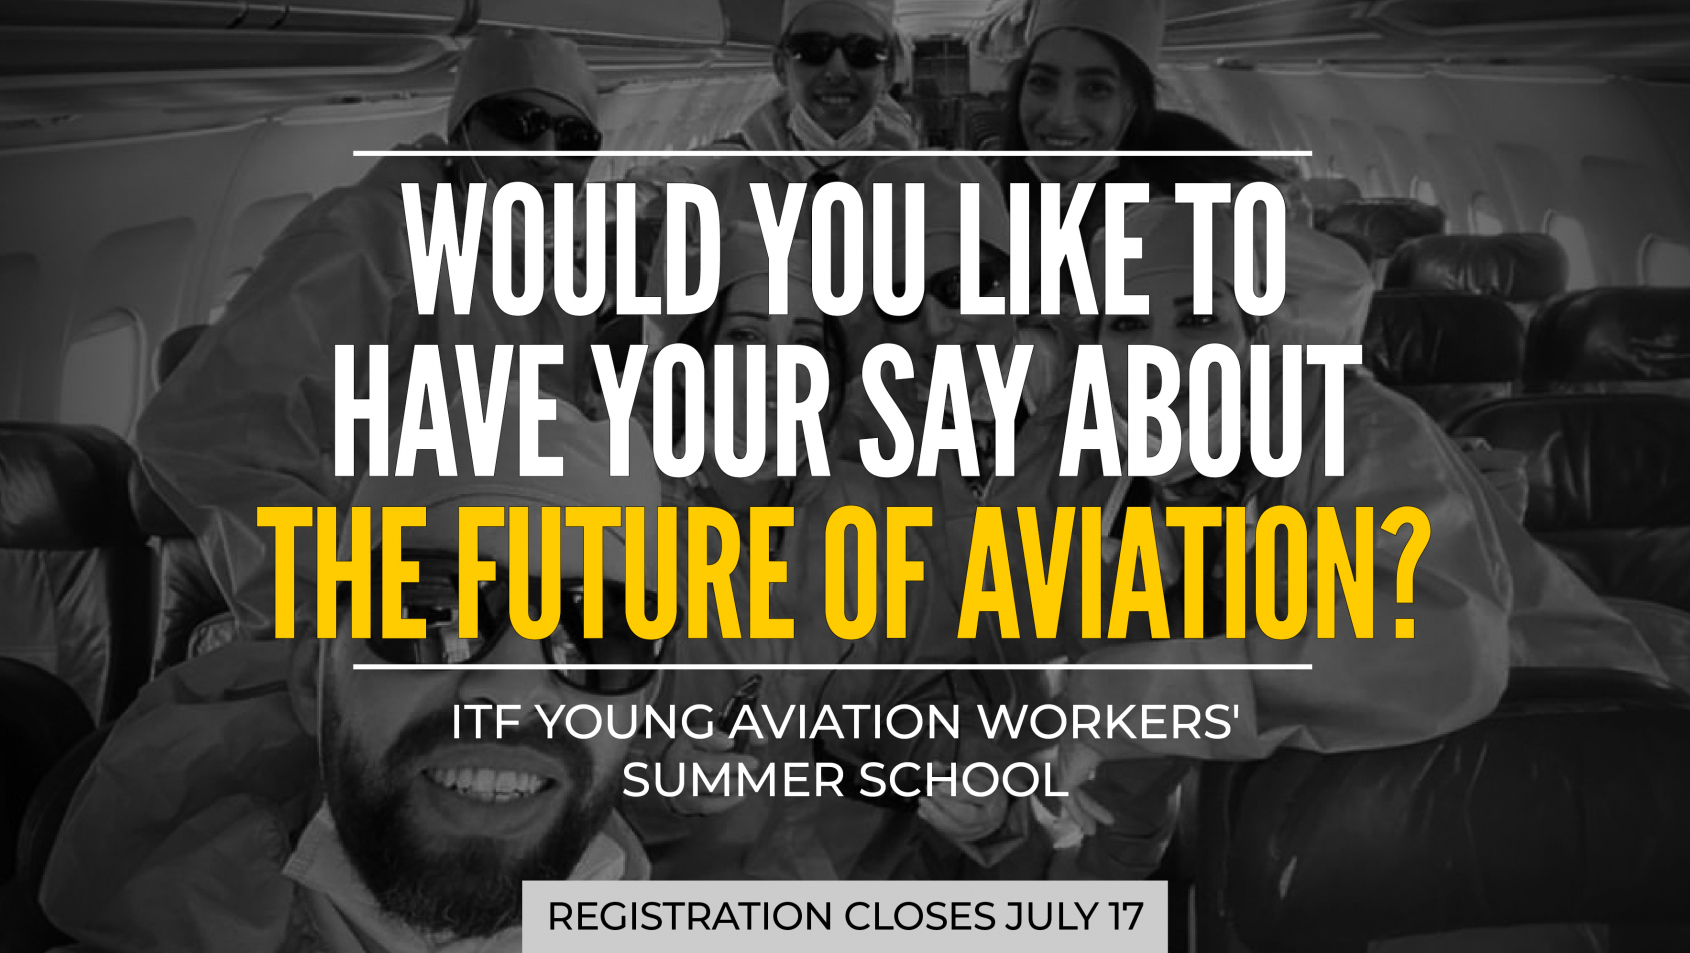 ITF Young Aviation Workers' Summer School